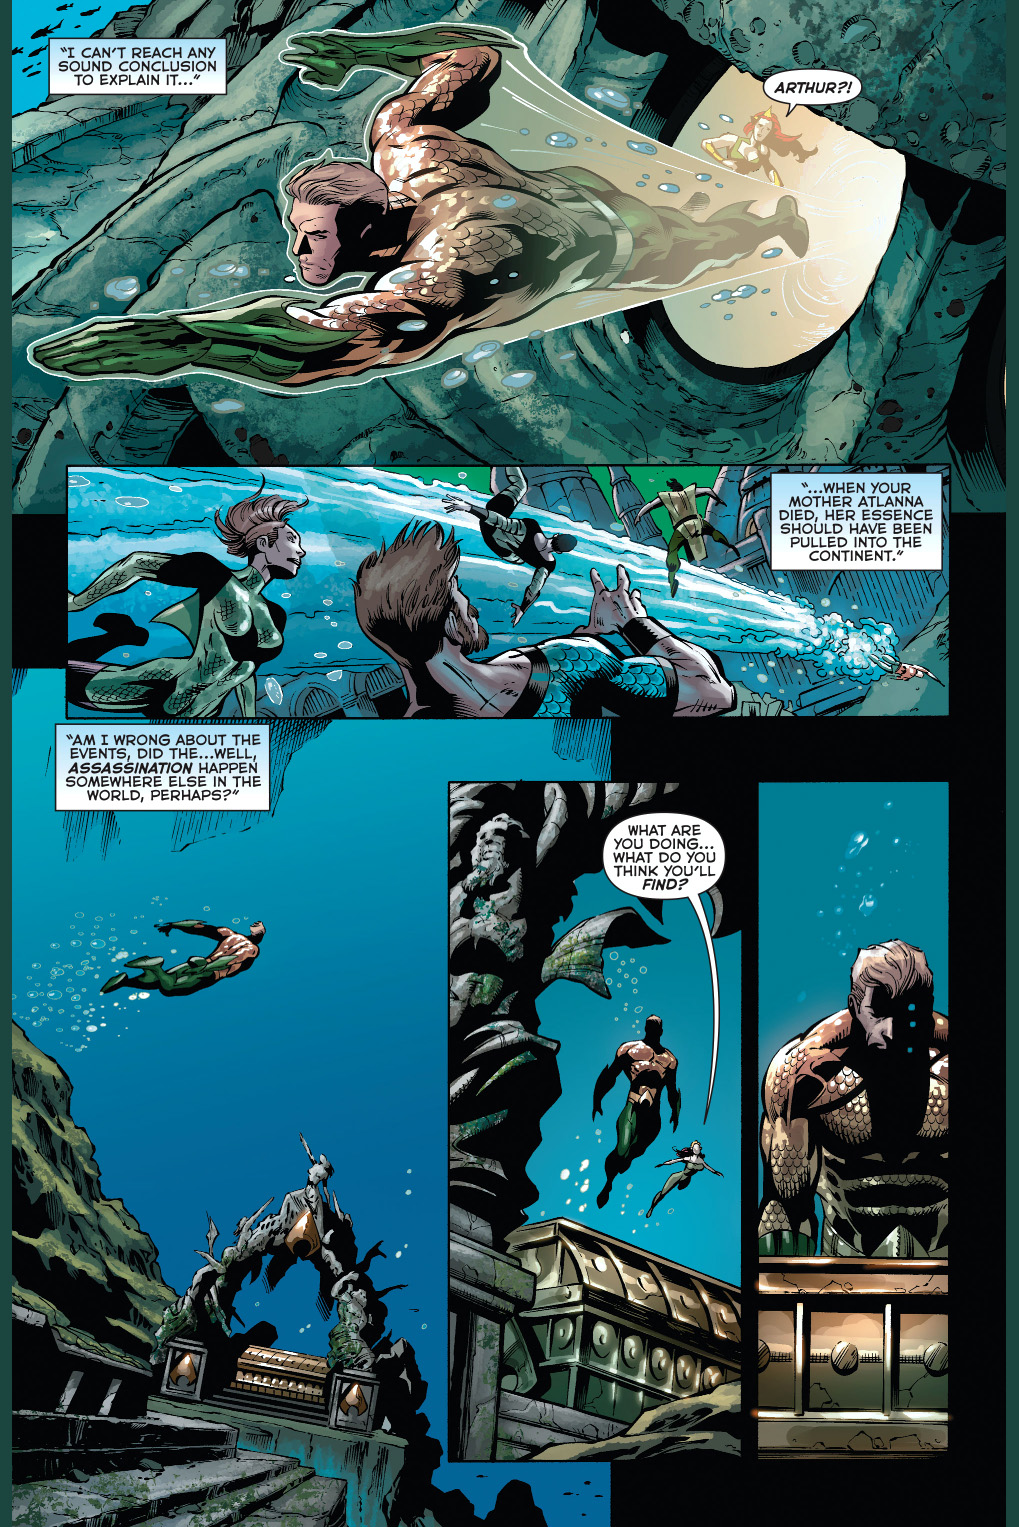 Why atlantis doesn't recognize aquaman as king